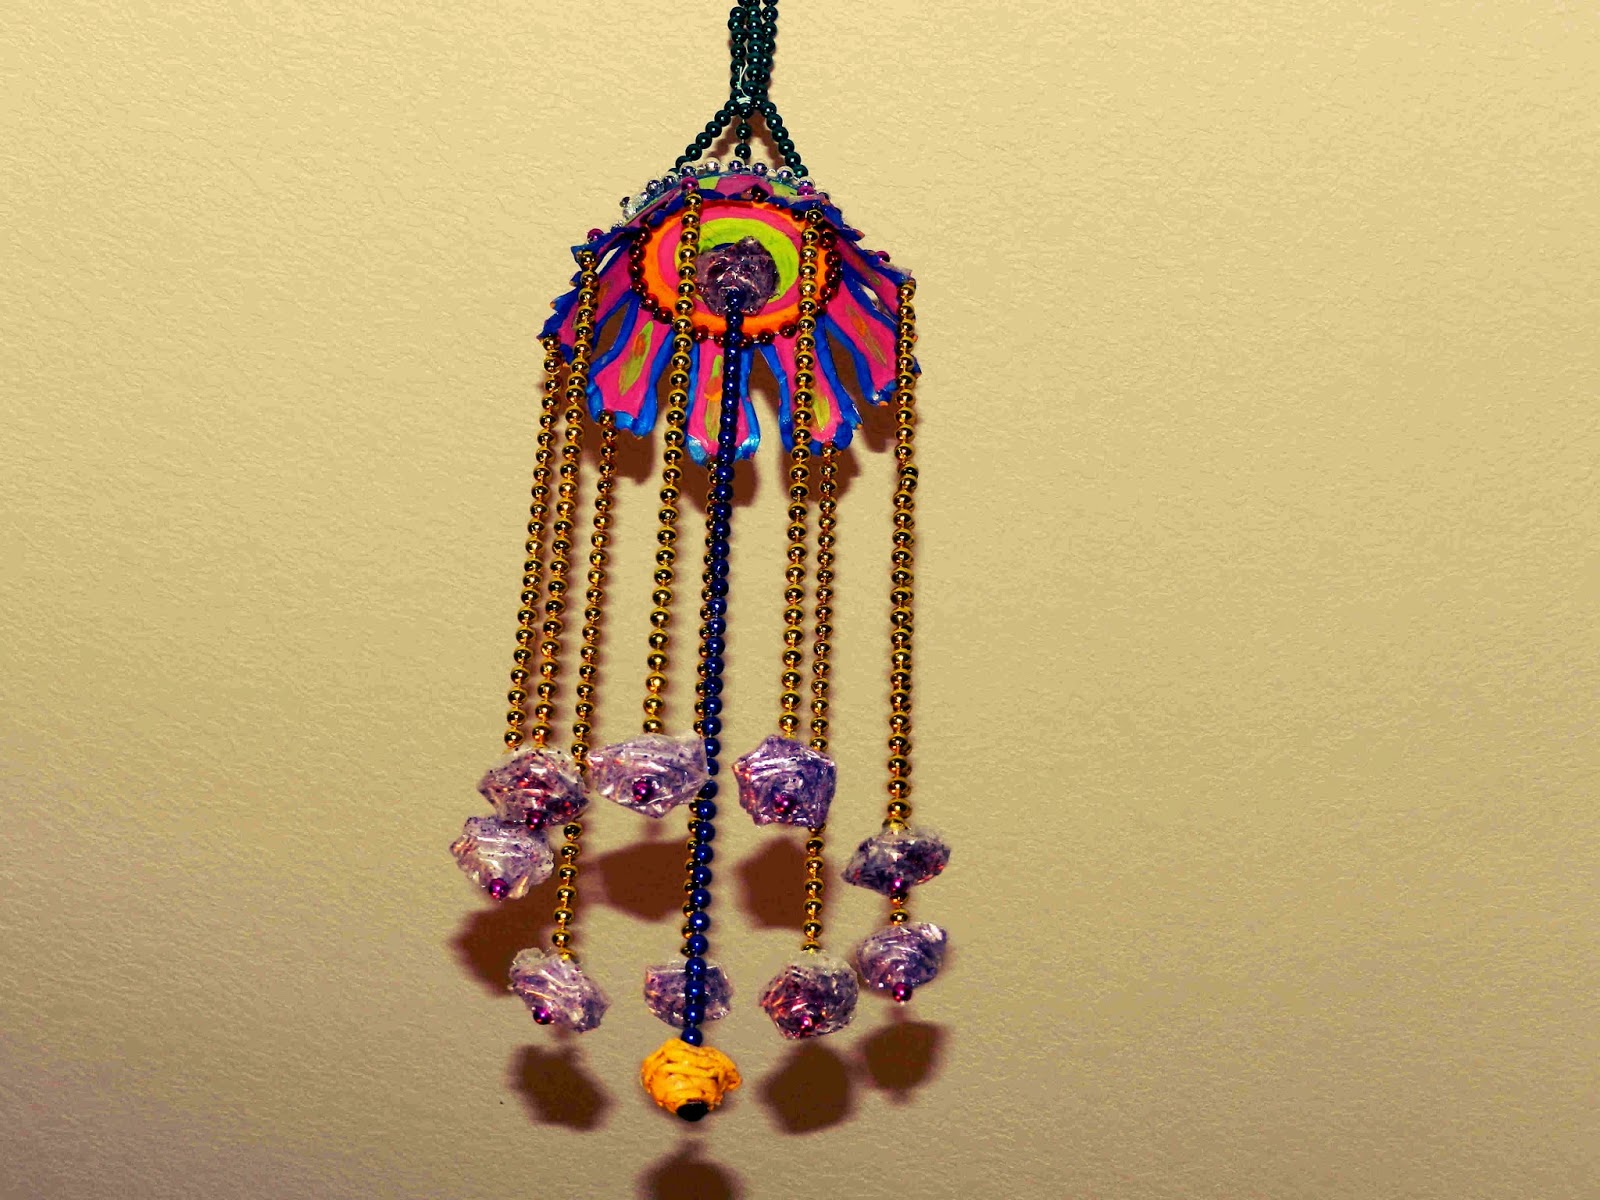 Creative diy crafts crafts from waste materials for Wall hanging out of waste material